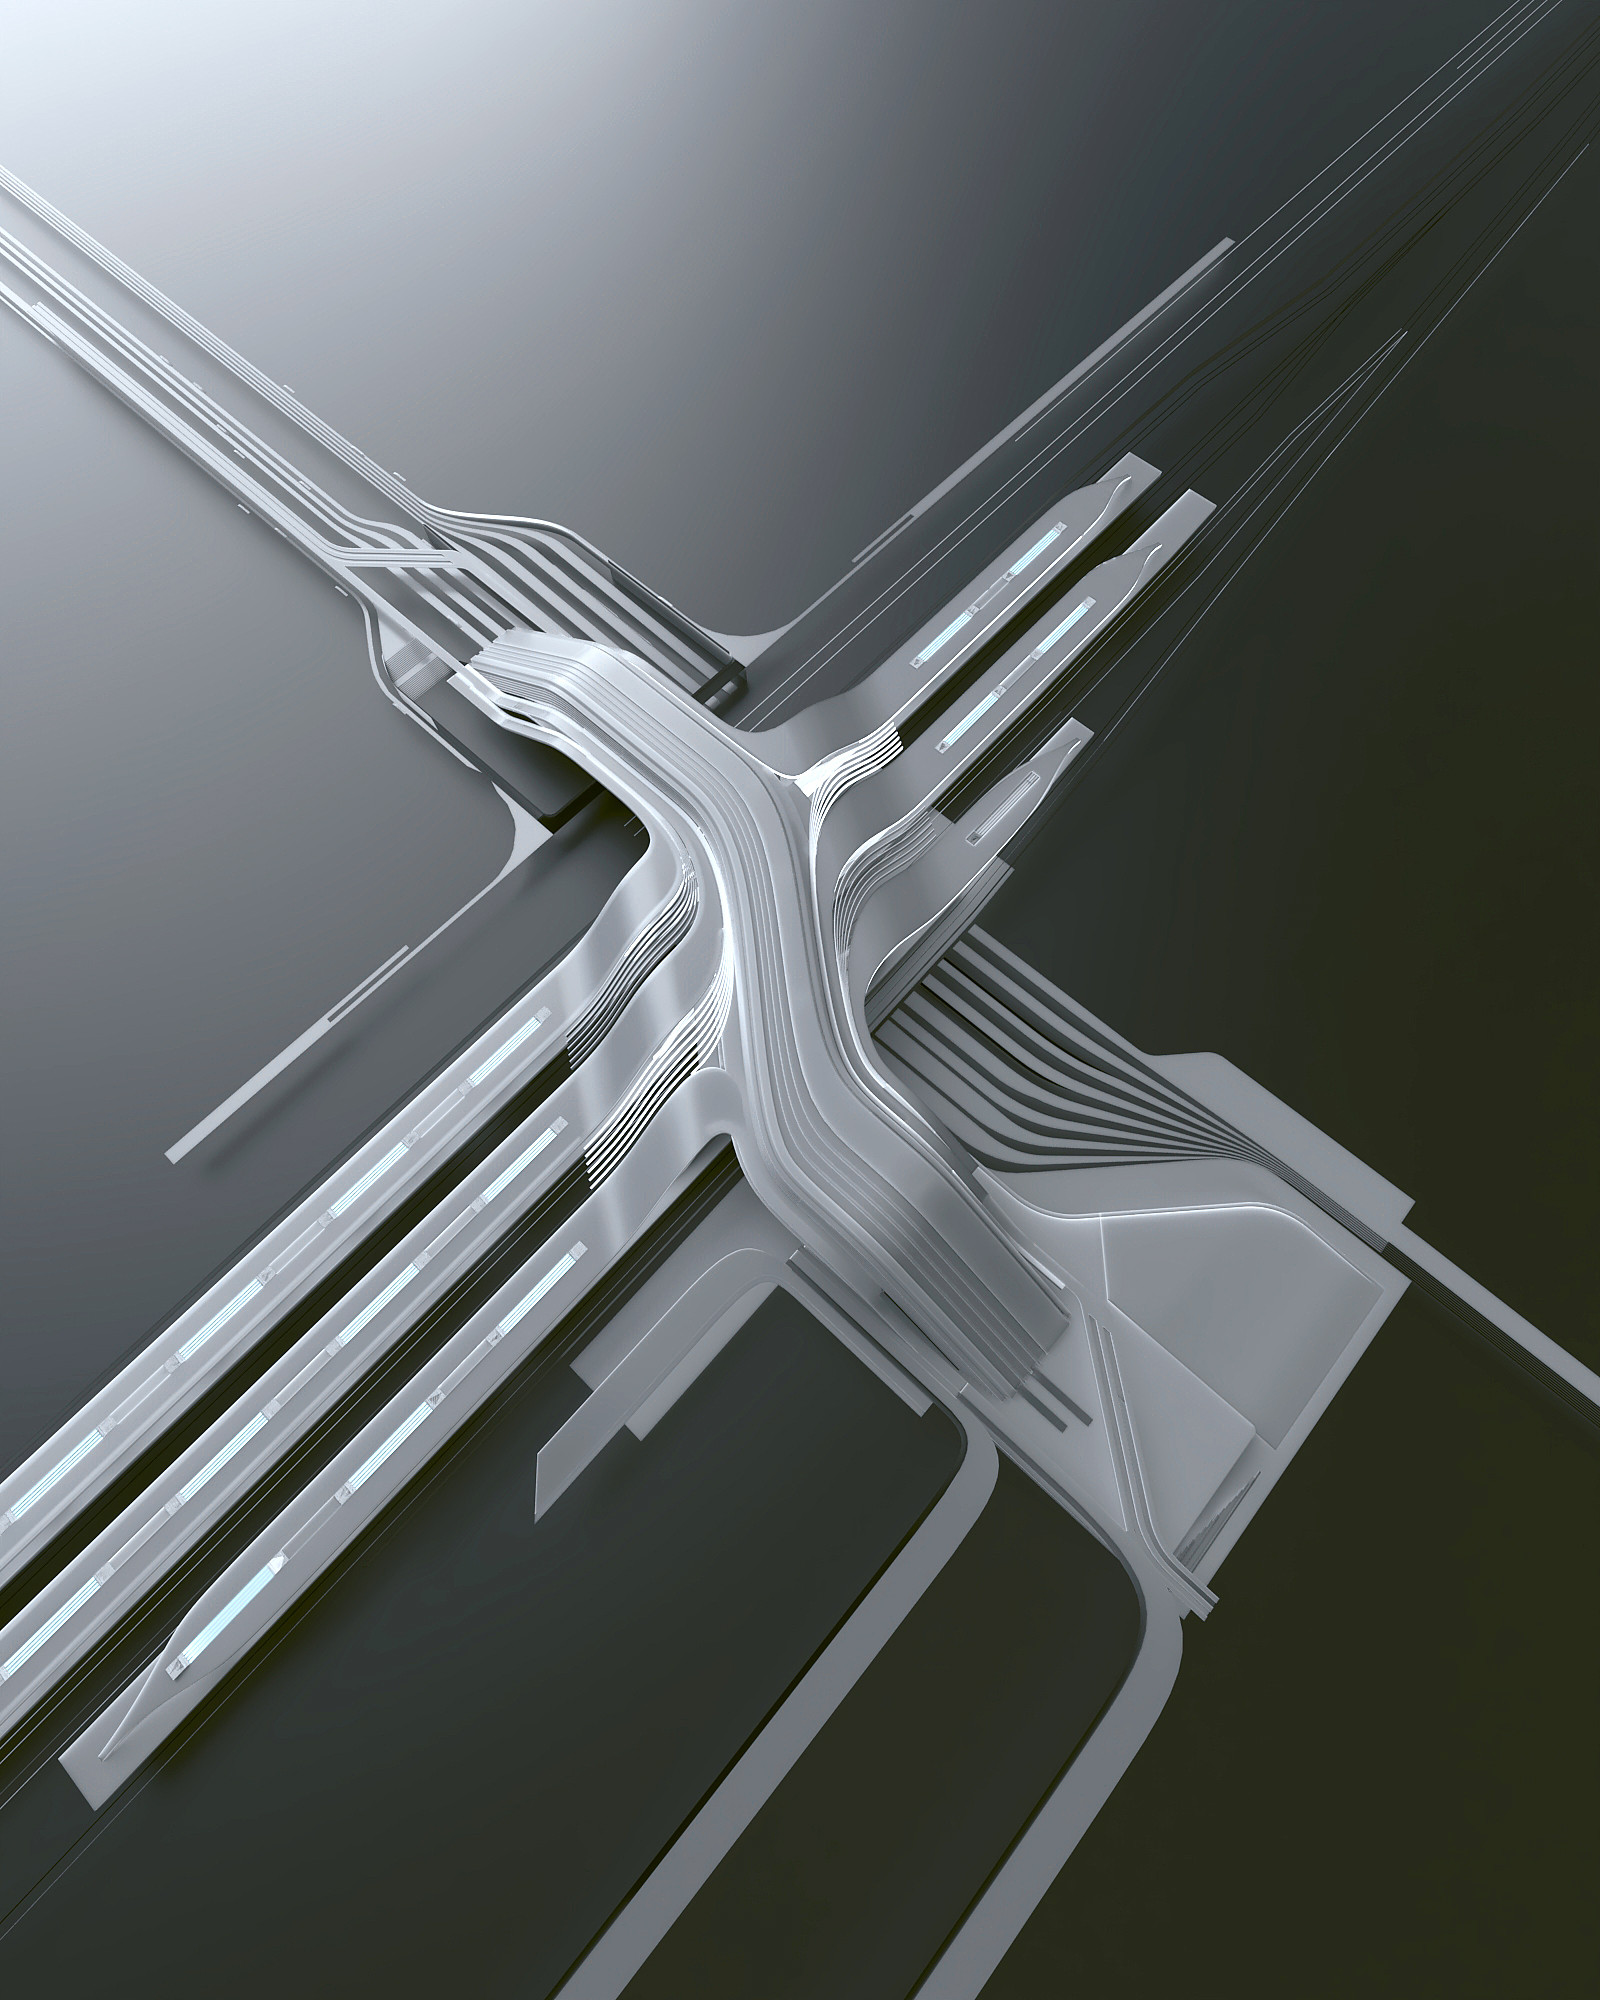 Zaha Hadid Architects. Rail Baltic Ülemiste terminal. 2019. Render